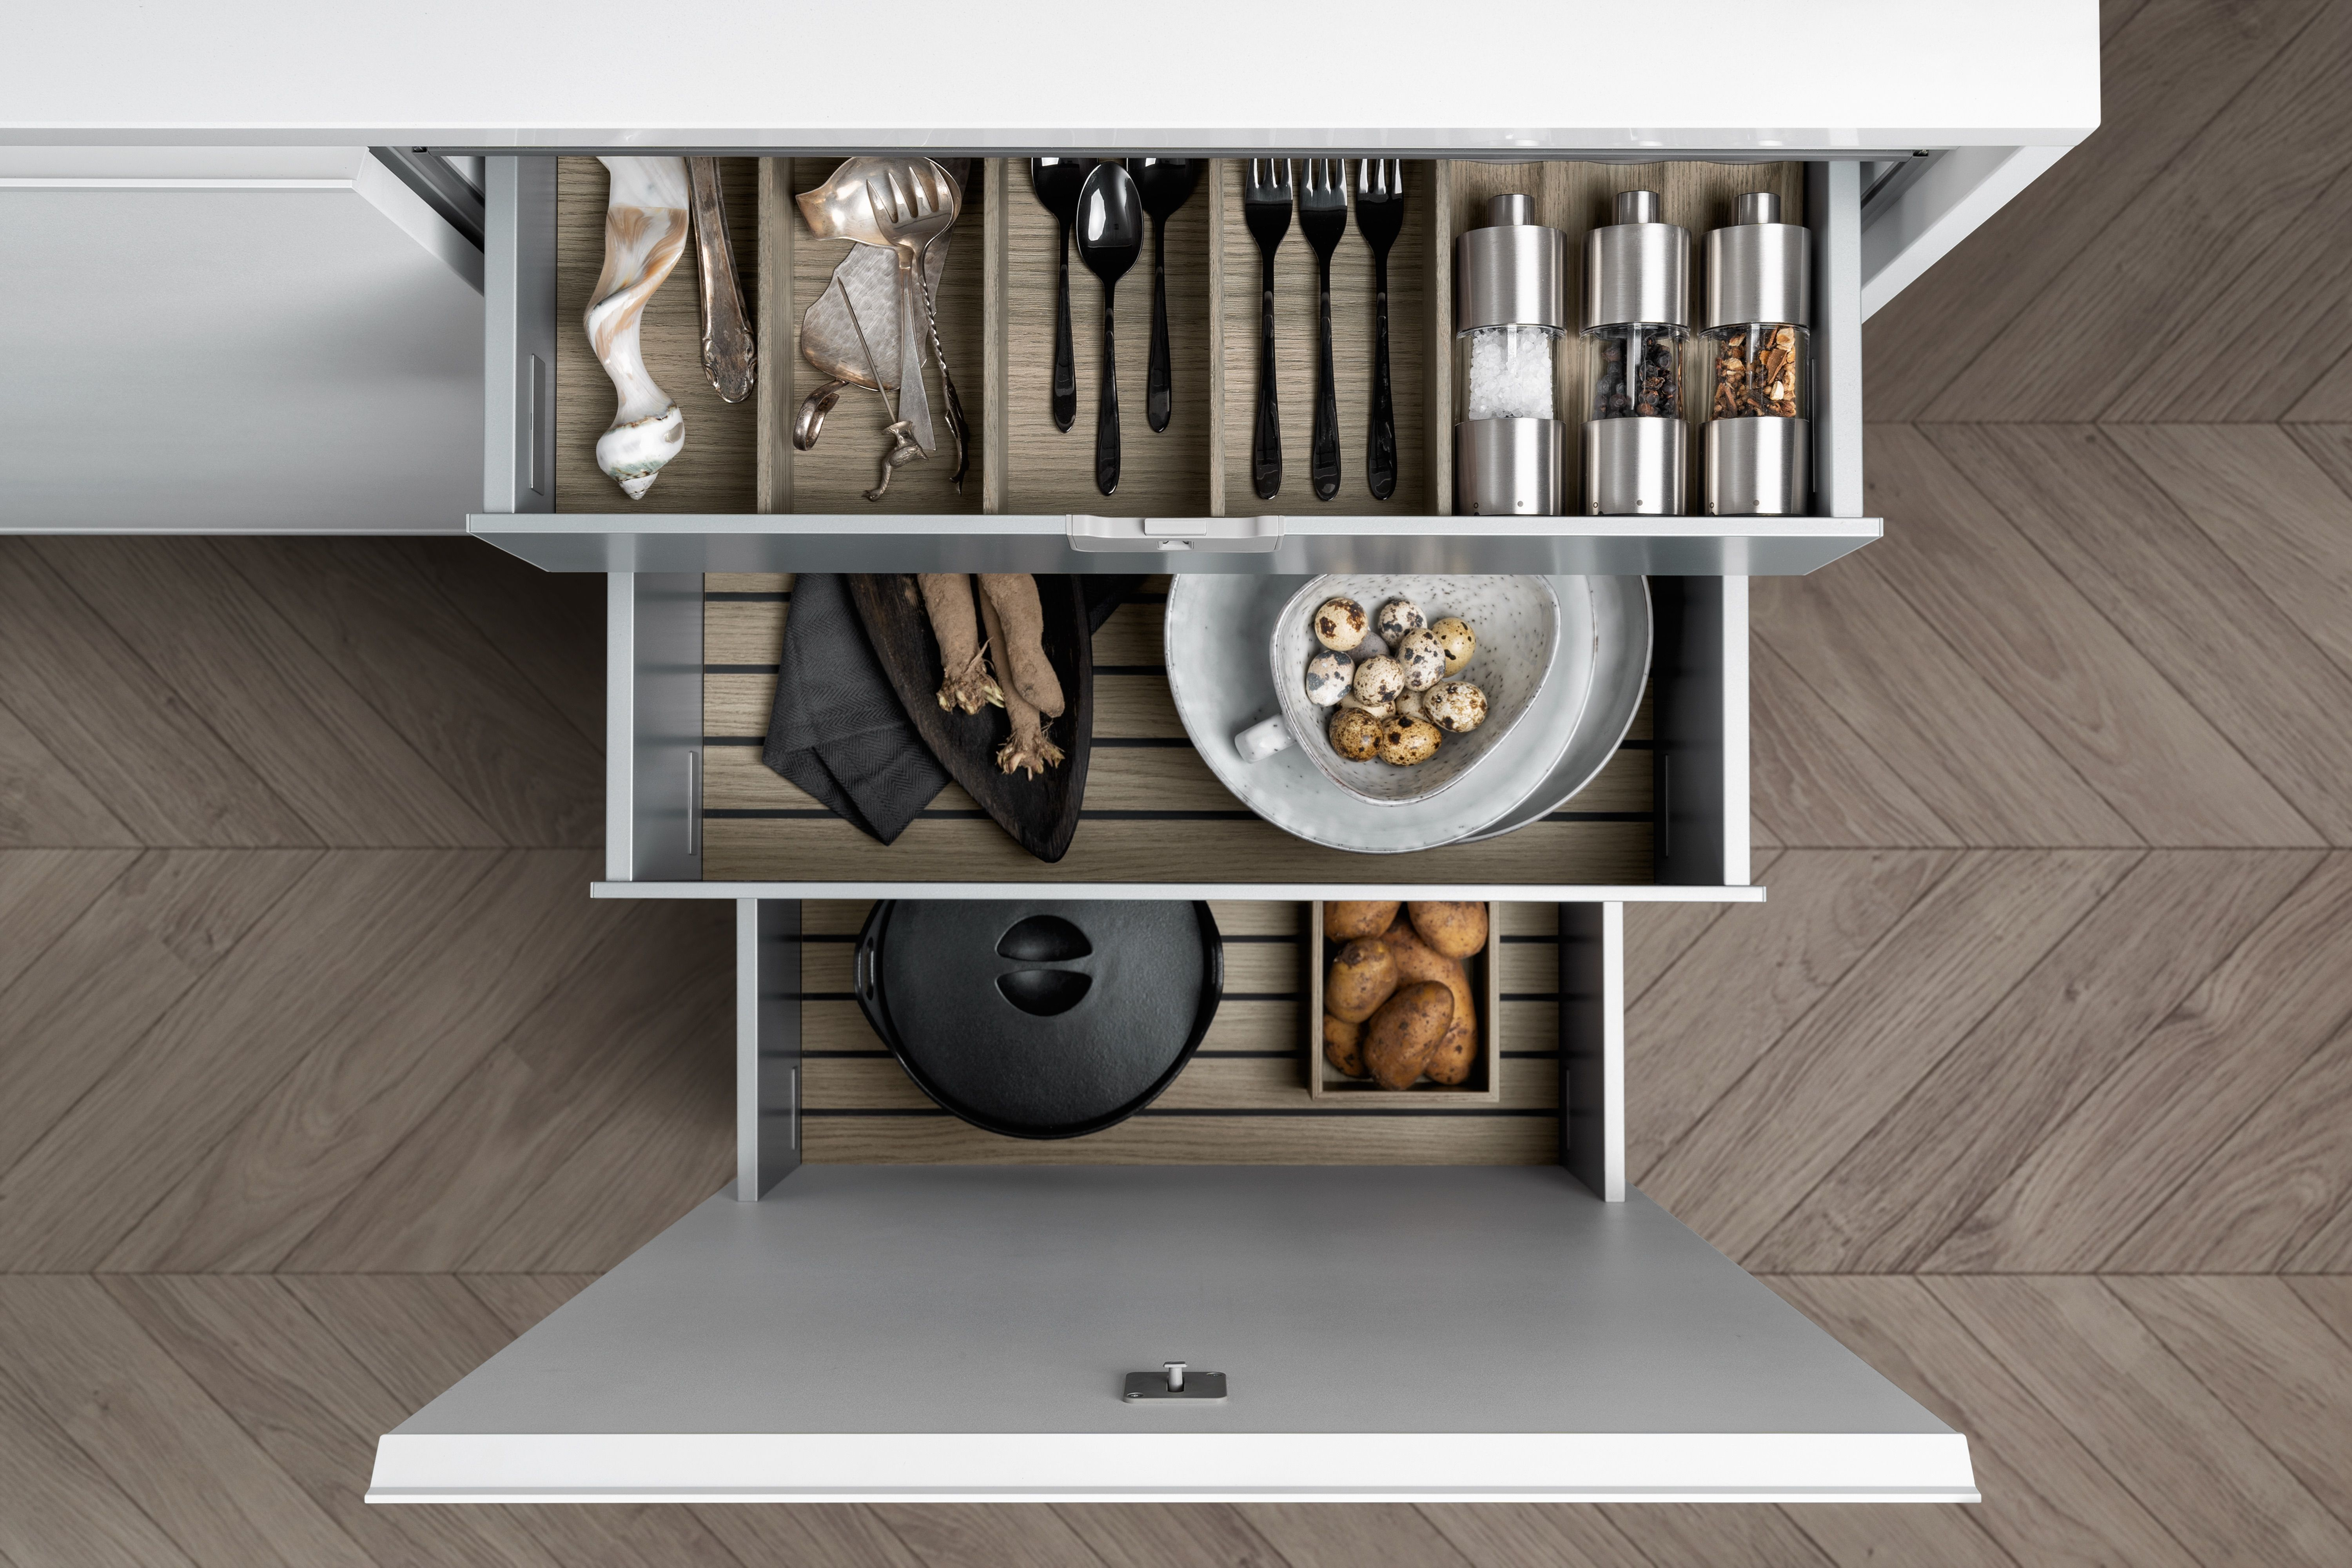 pin auf siematic inside for drawers and pull-outs